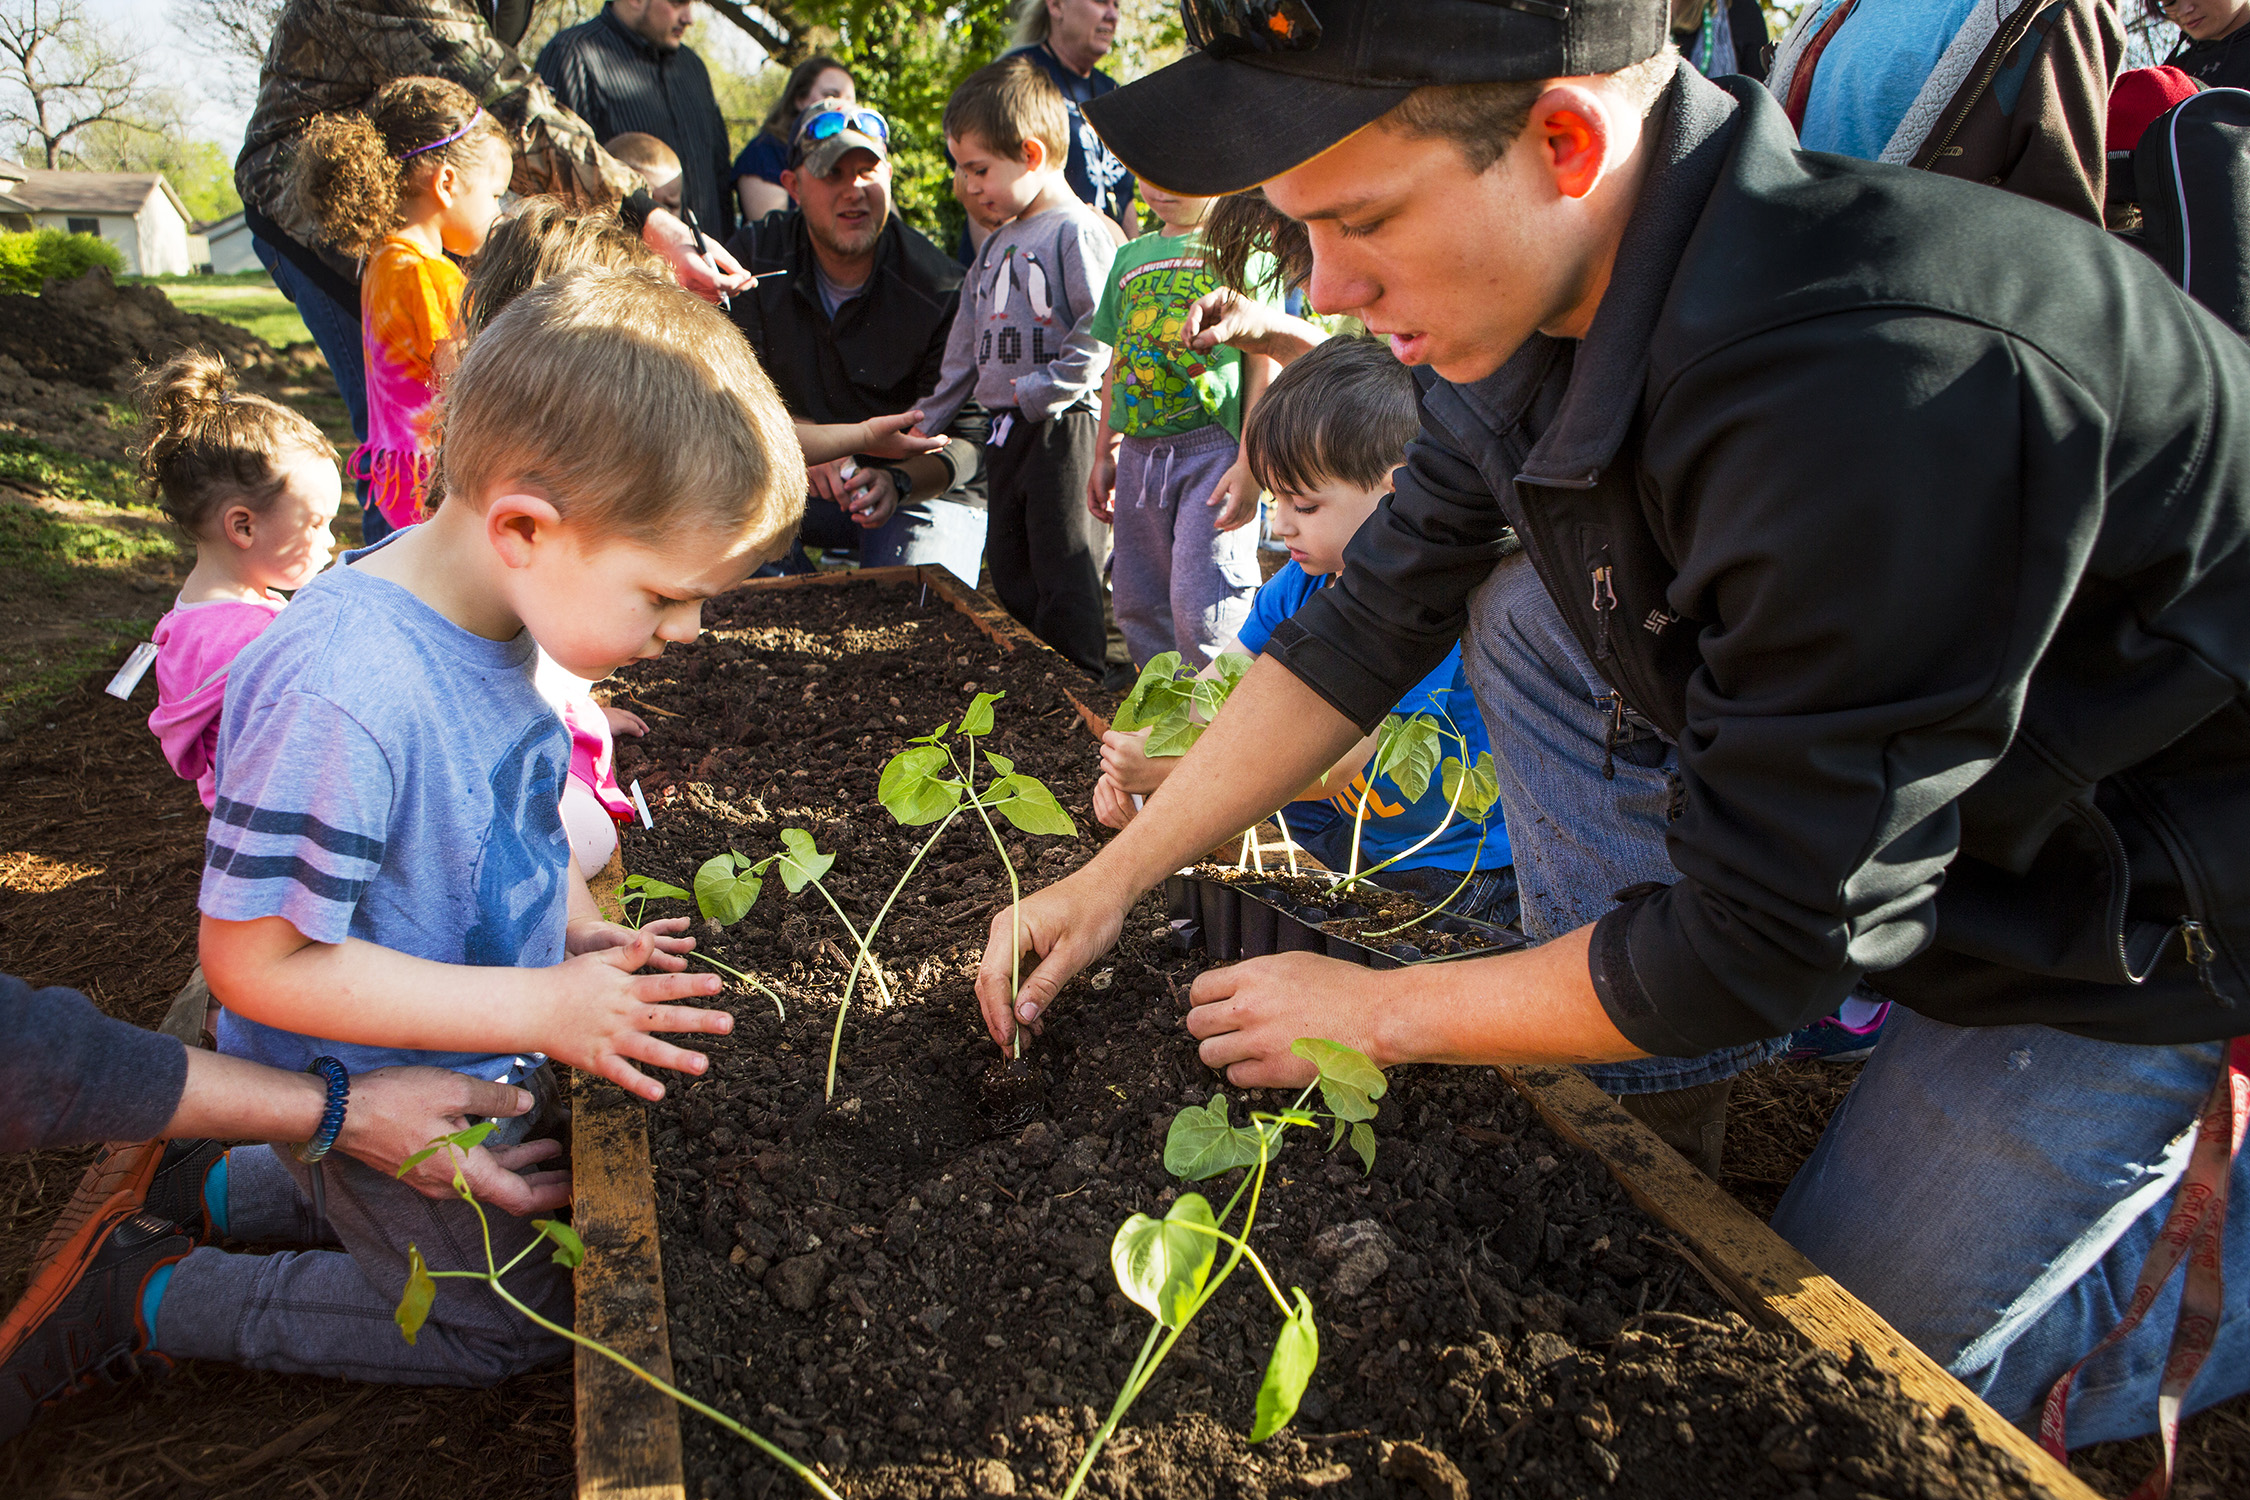 Kinder Garden: Early Childhood Education Center Receives Farm To